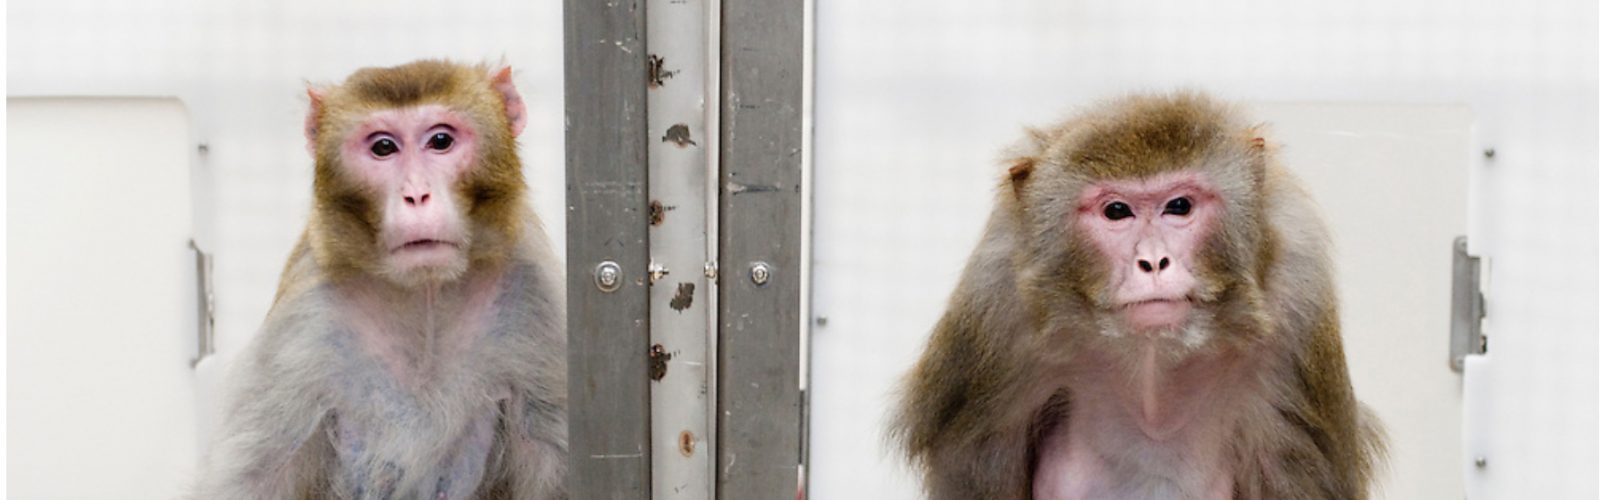 Two rhesus macaques side by side in the WNPRC calorie restriction and aging study 2009 (go.wisc.edu image)